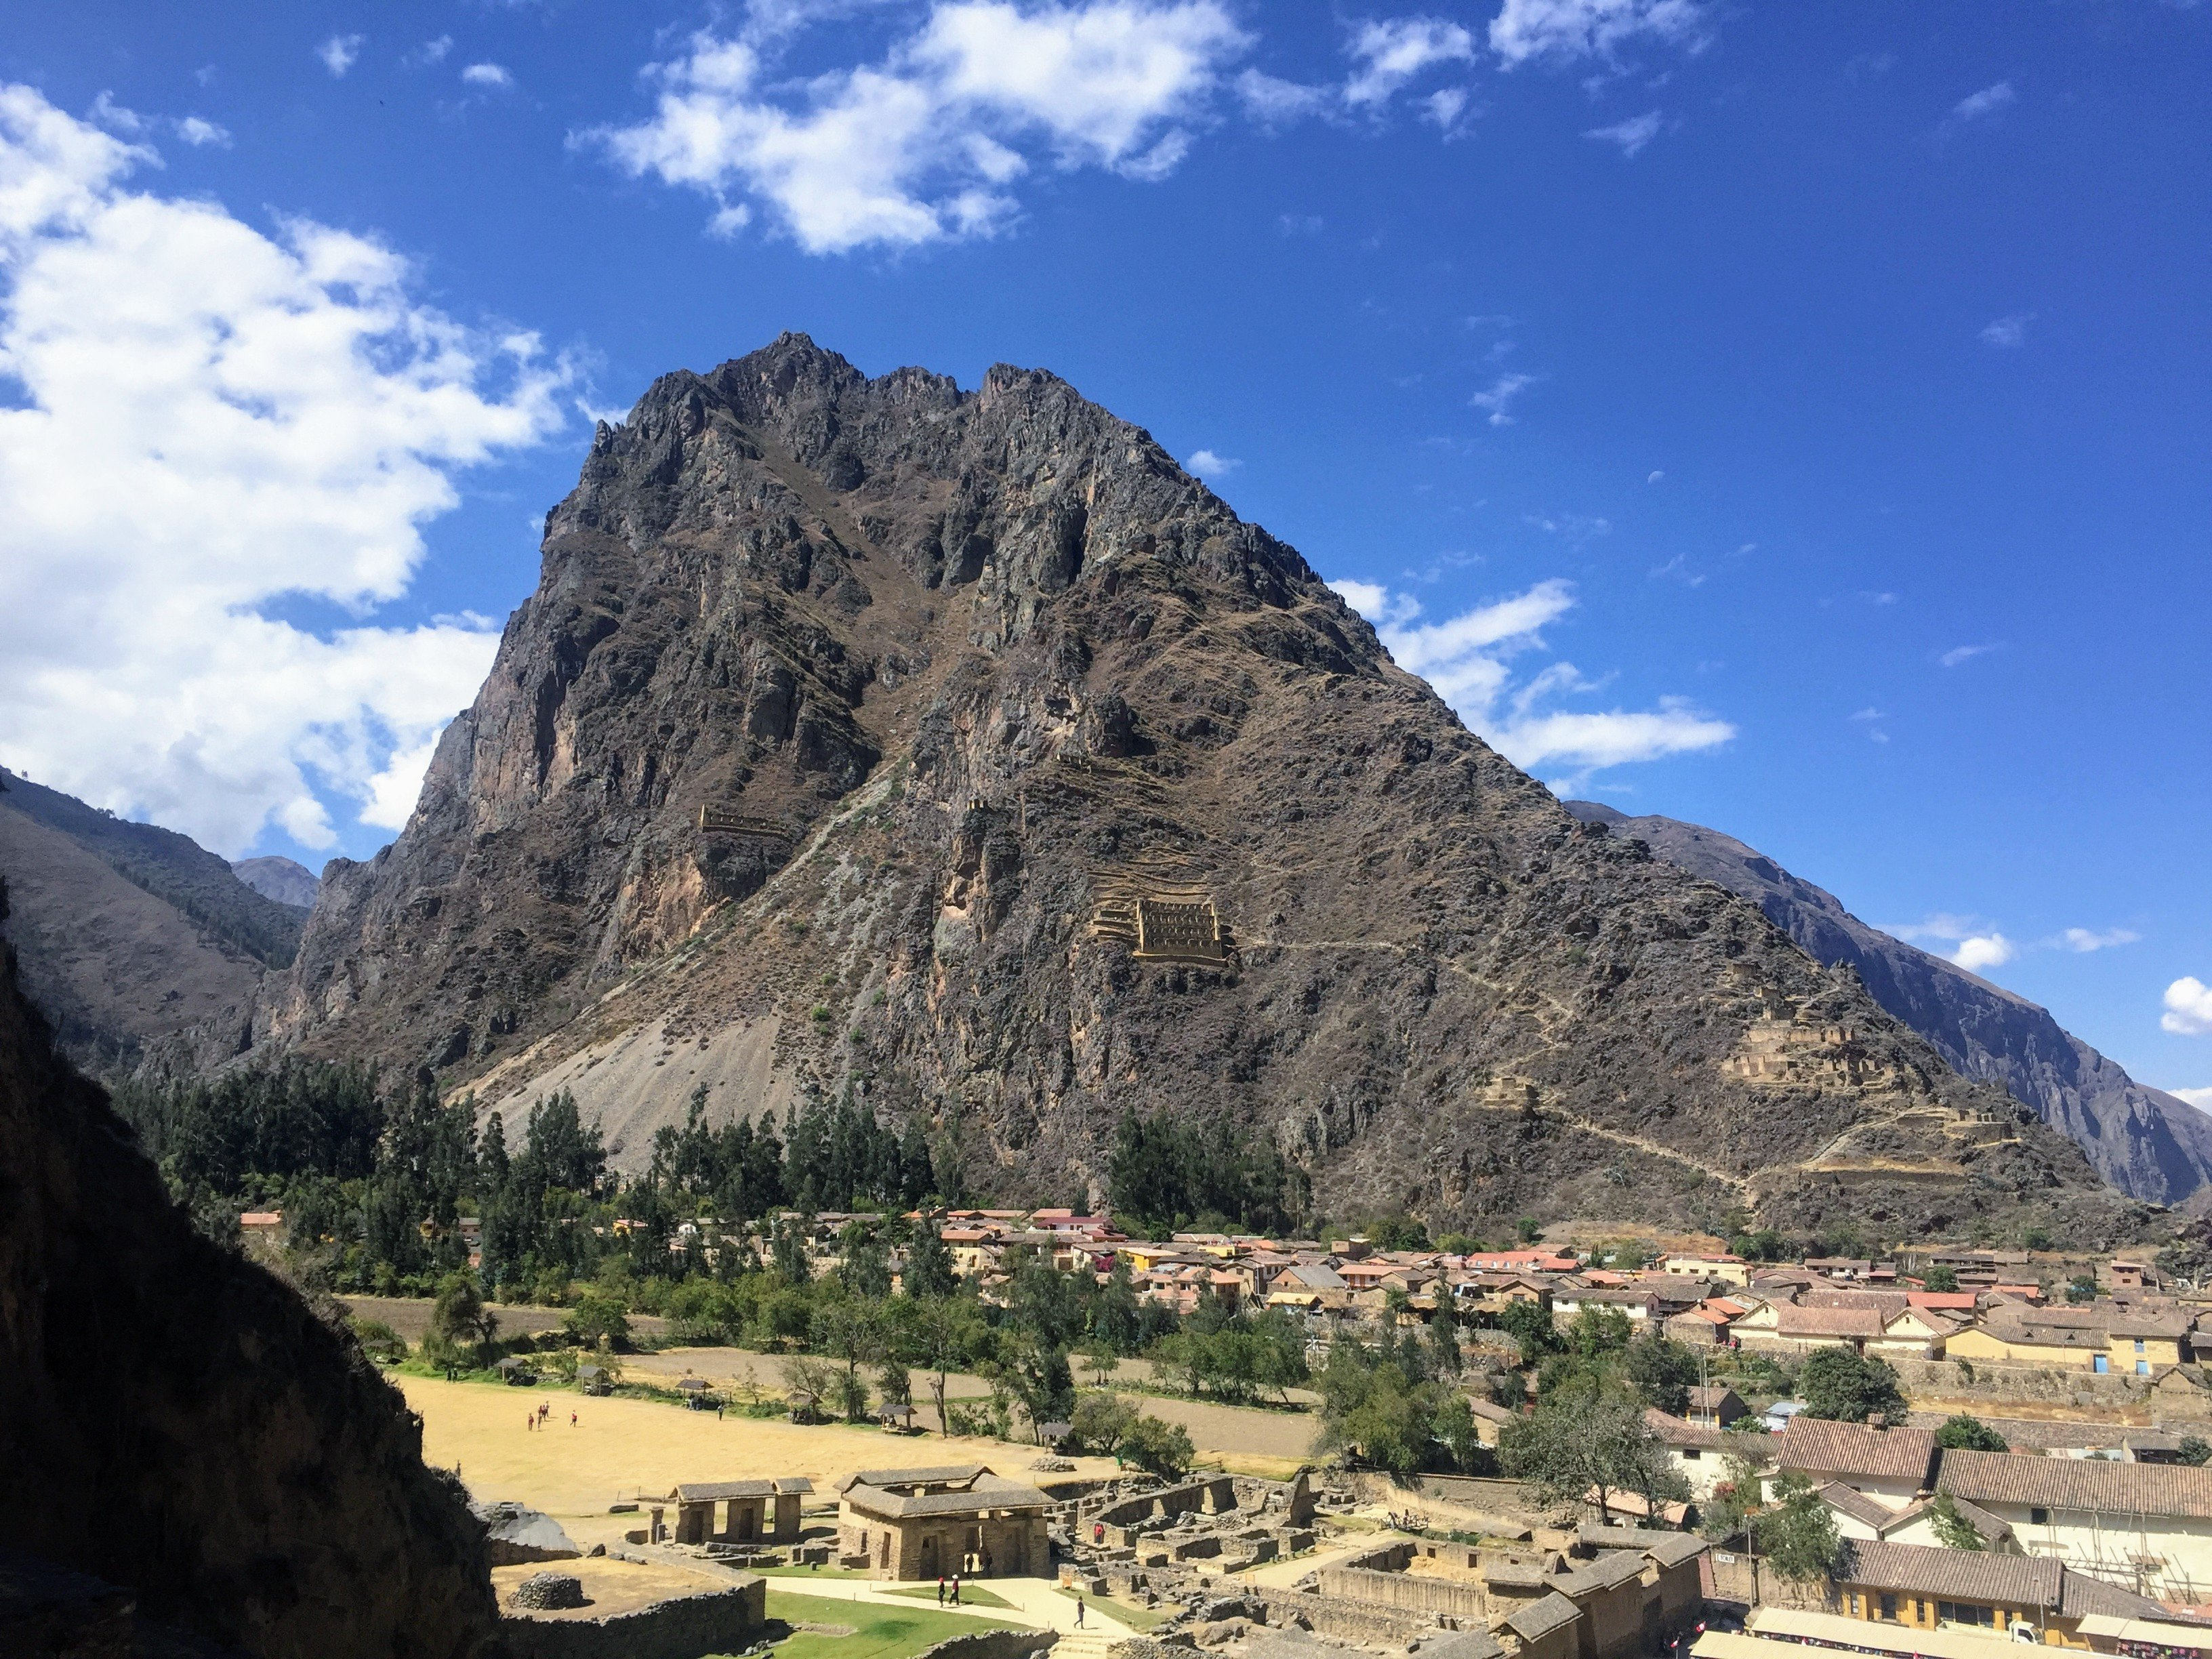 view from the Ollantaytambo ruins in Peru's Sacred Valley